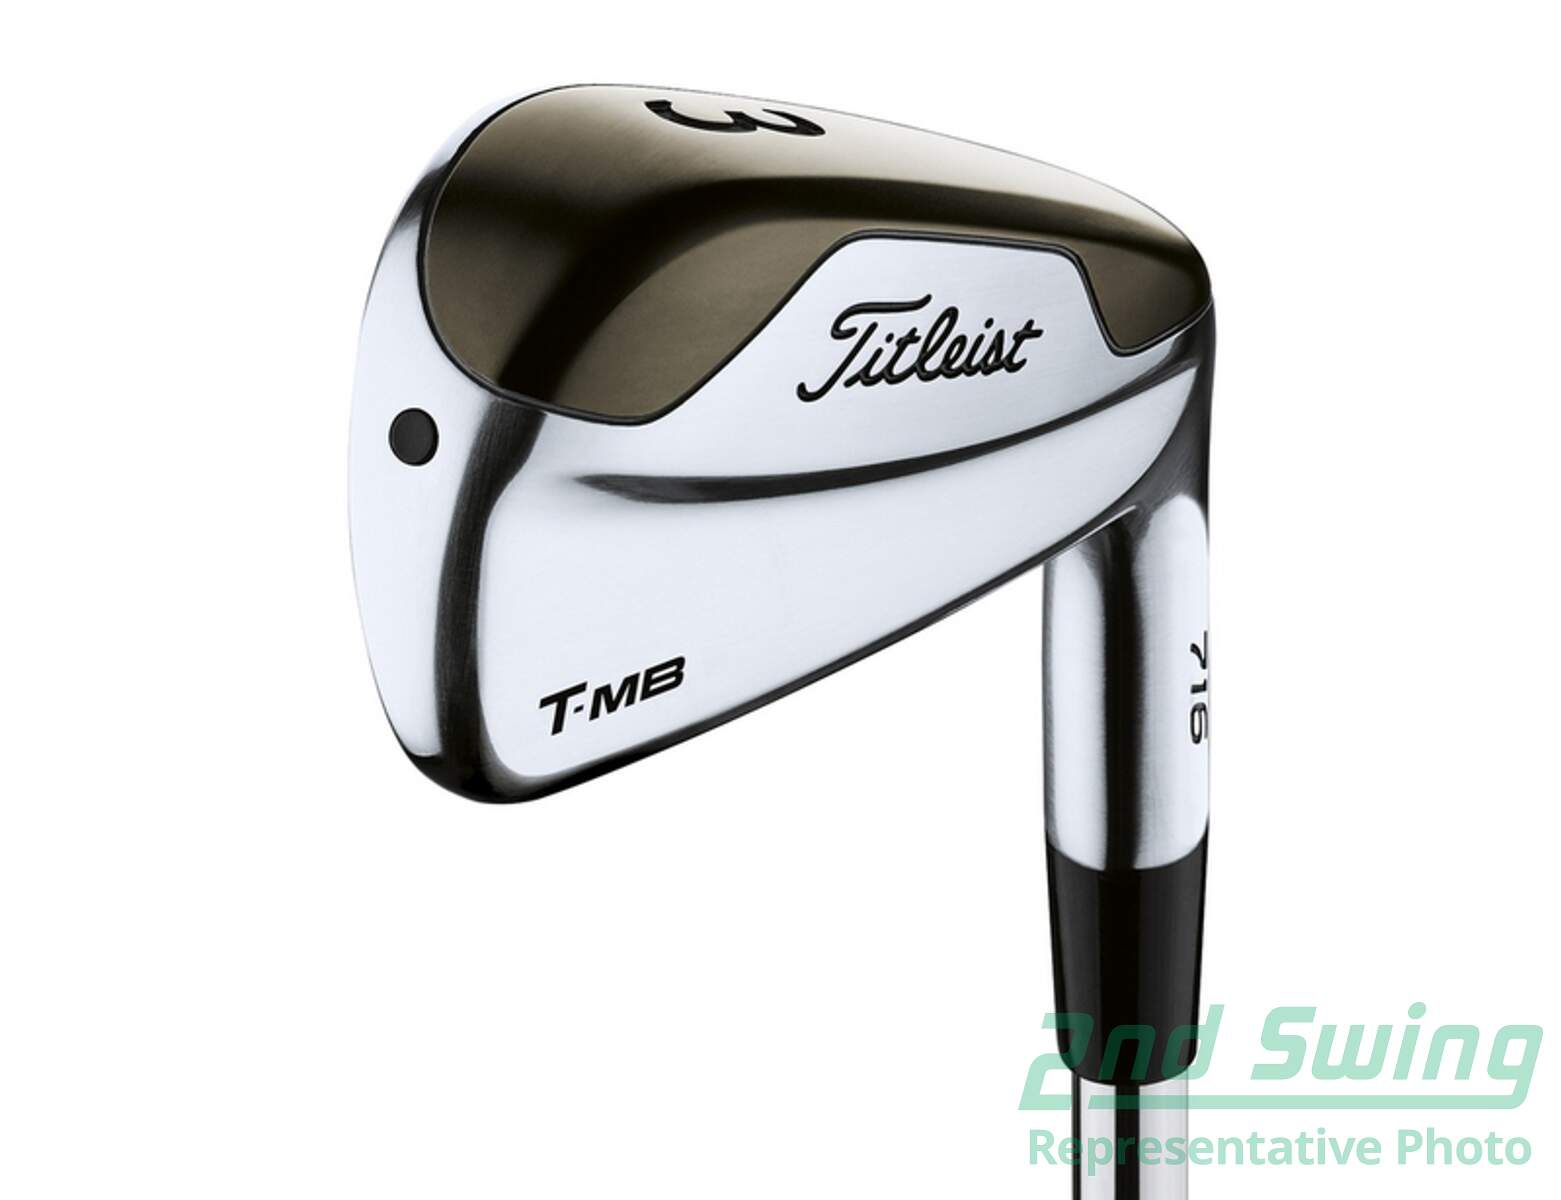 Leist 716 T Mb Hybrid 4 Iron Project X Pxi 6 0 Stiff 23 Right Handed New Golf Club